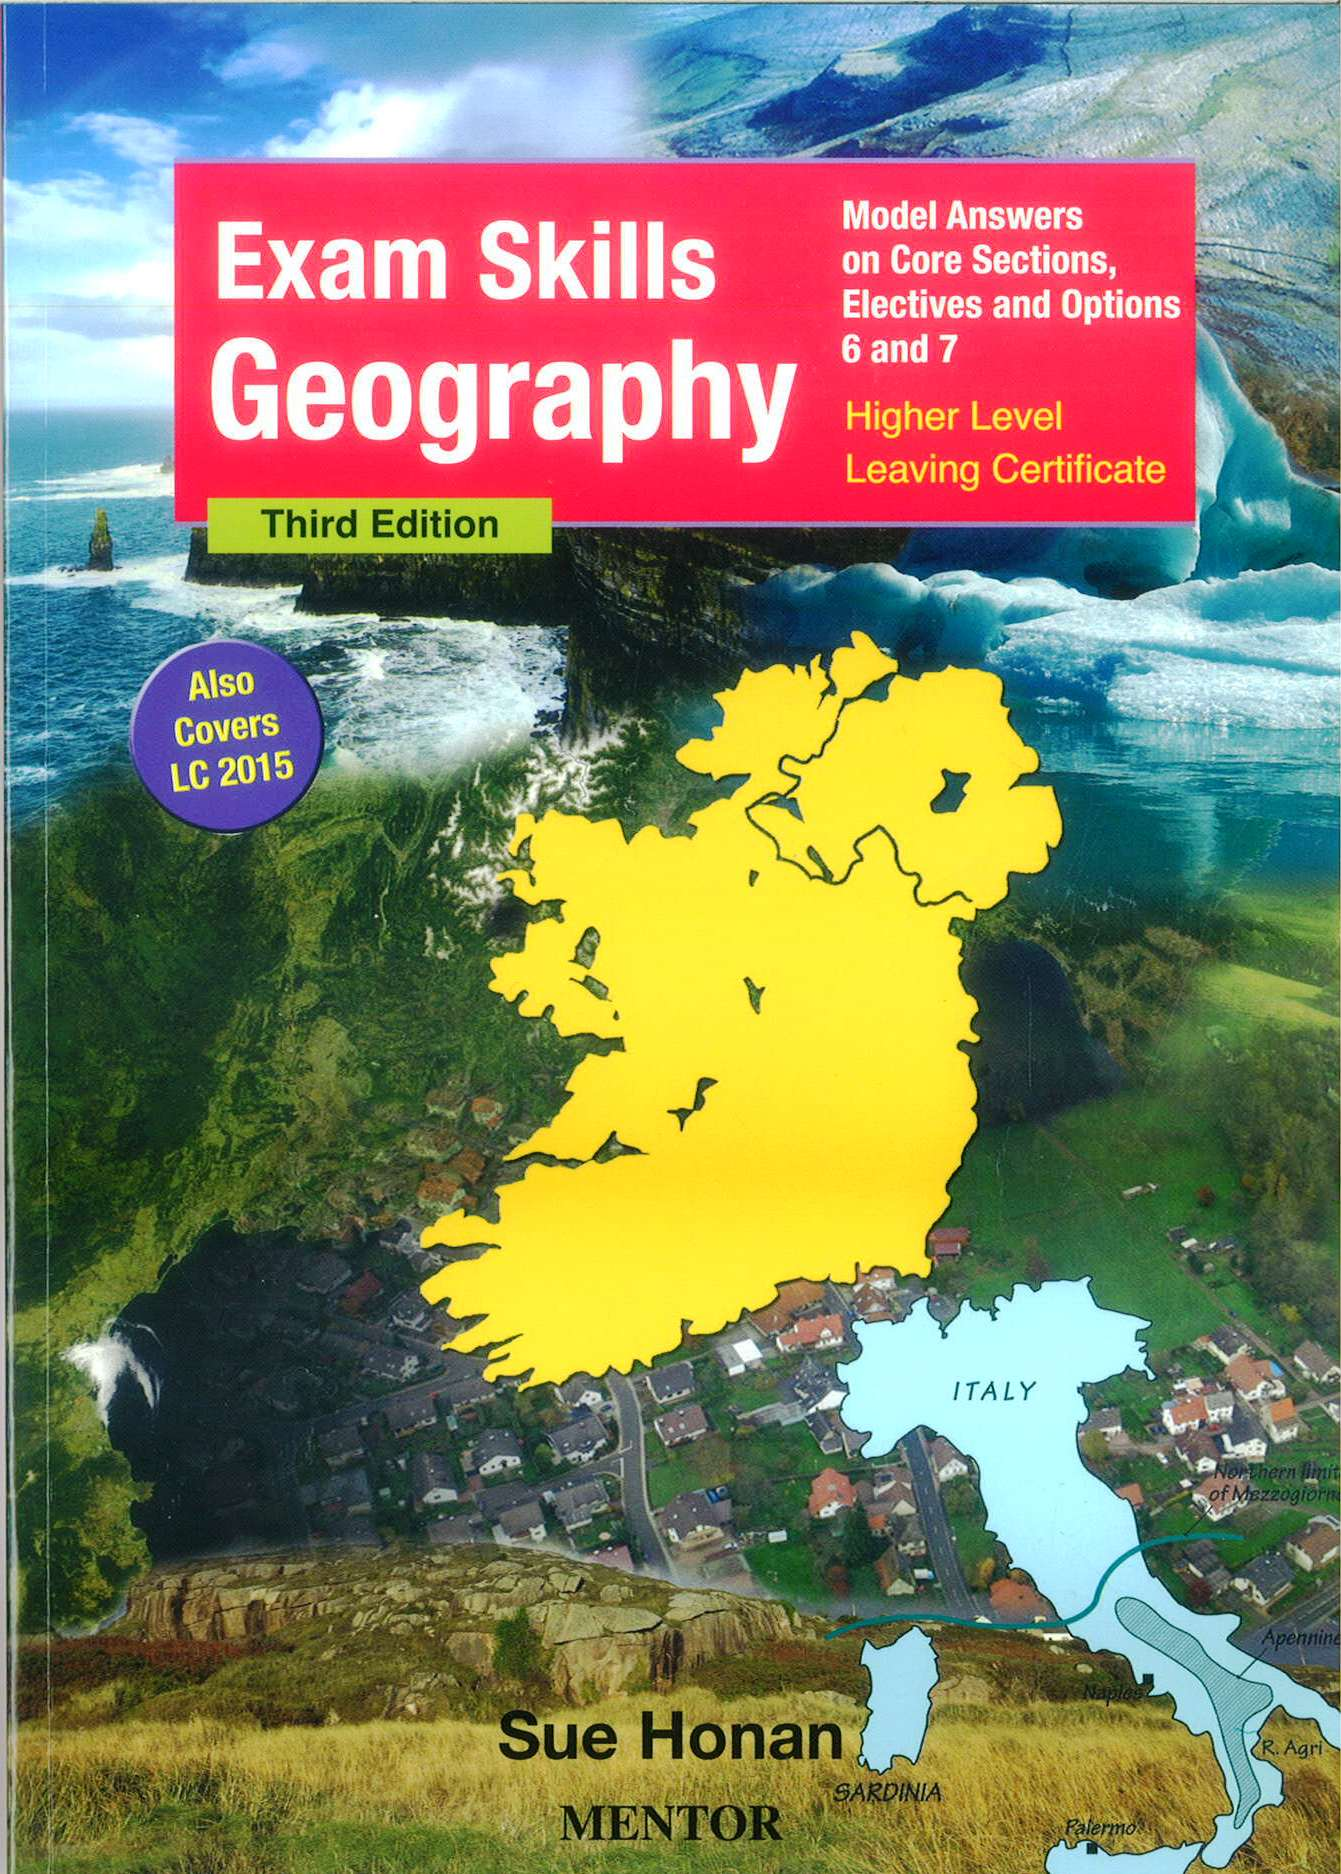 Exam skills geography 3rd edition model answers on core sections exam skills geography 3rd edition model answers on core sections electives and options 6 7 yelopaper Images